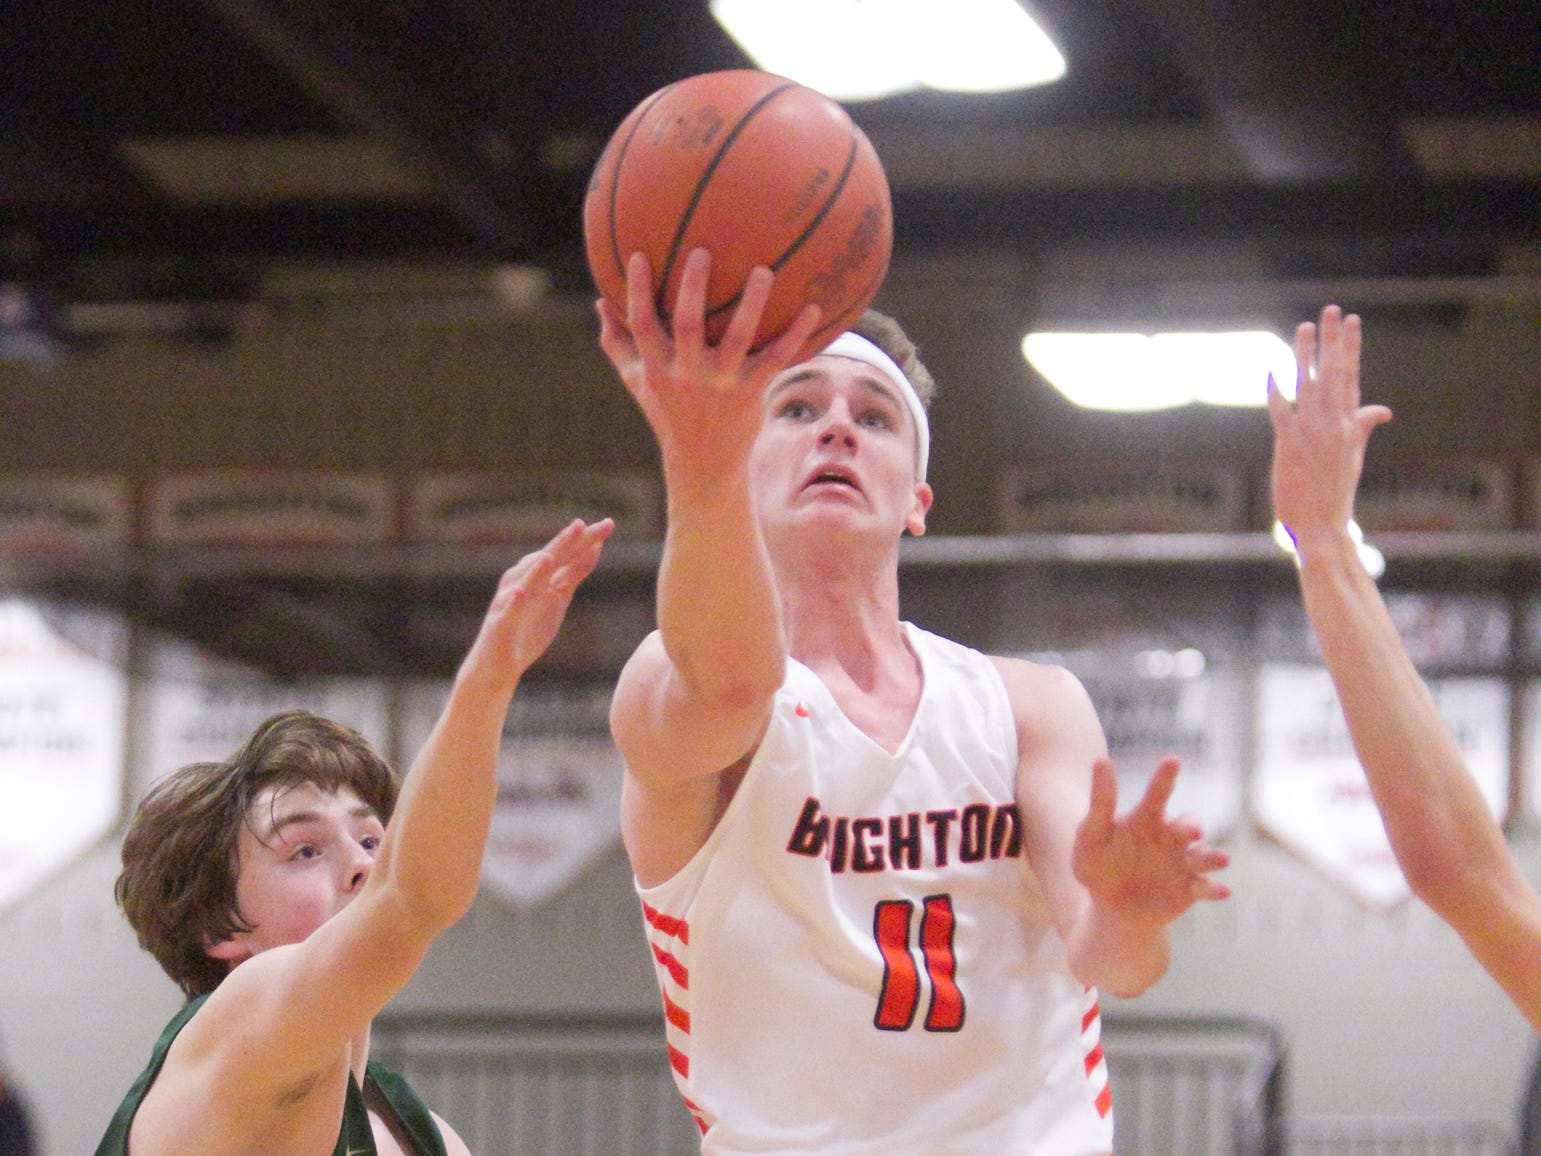 Brighton's Jacob Dunn shoots in the first quarter of the game against Howell Tuesday, Jan. 8, 2019.